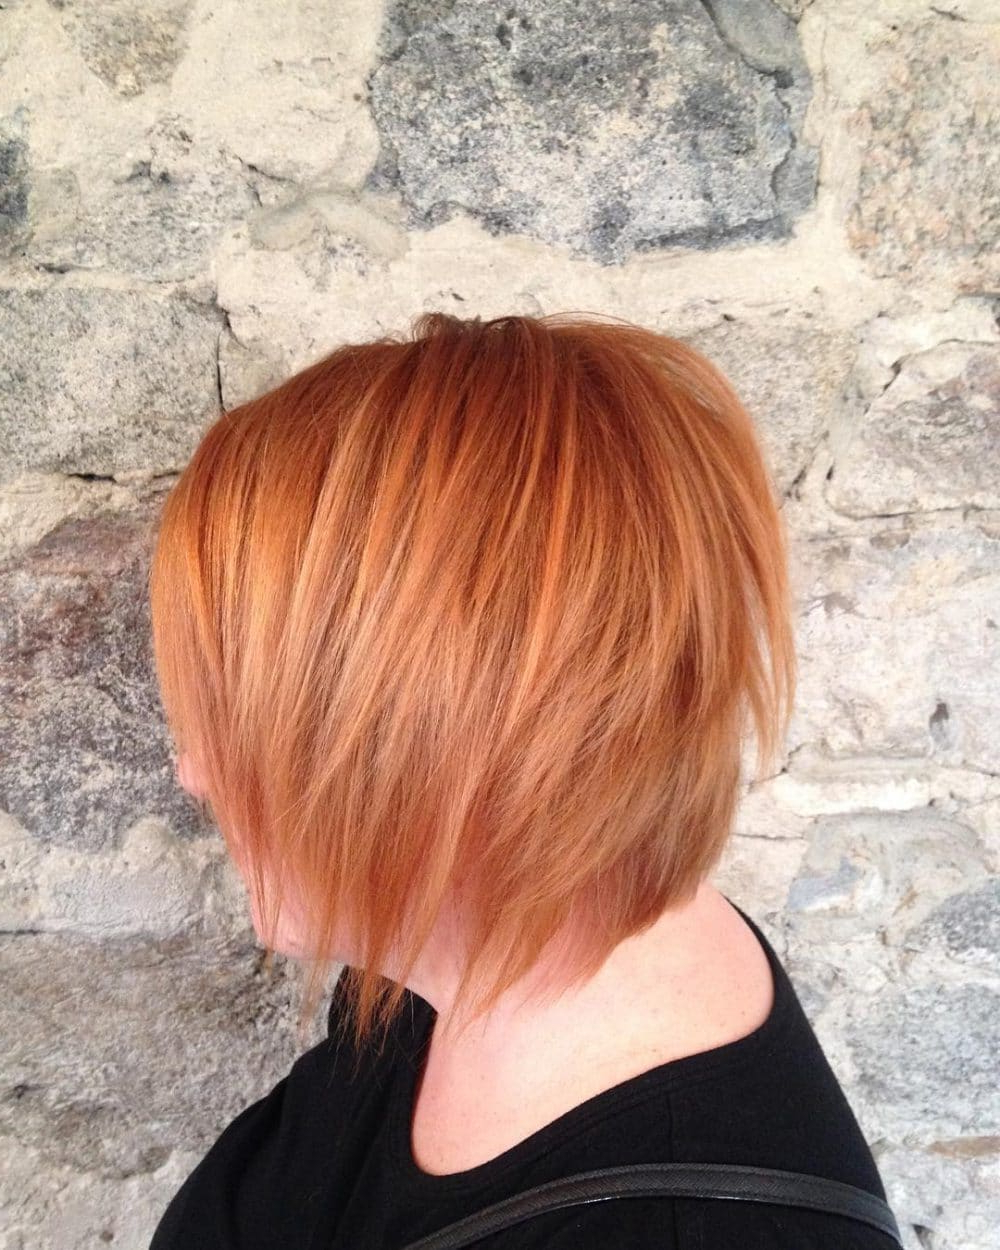 43 Youthful Short Hairstyles For Women Over 50 (with Fine With Dusty Lavender Short Shag Haircuts (View 18 of 20)